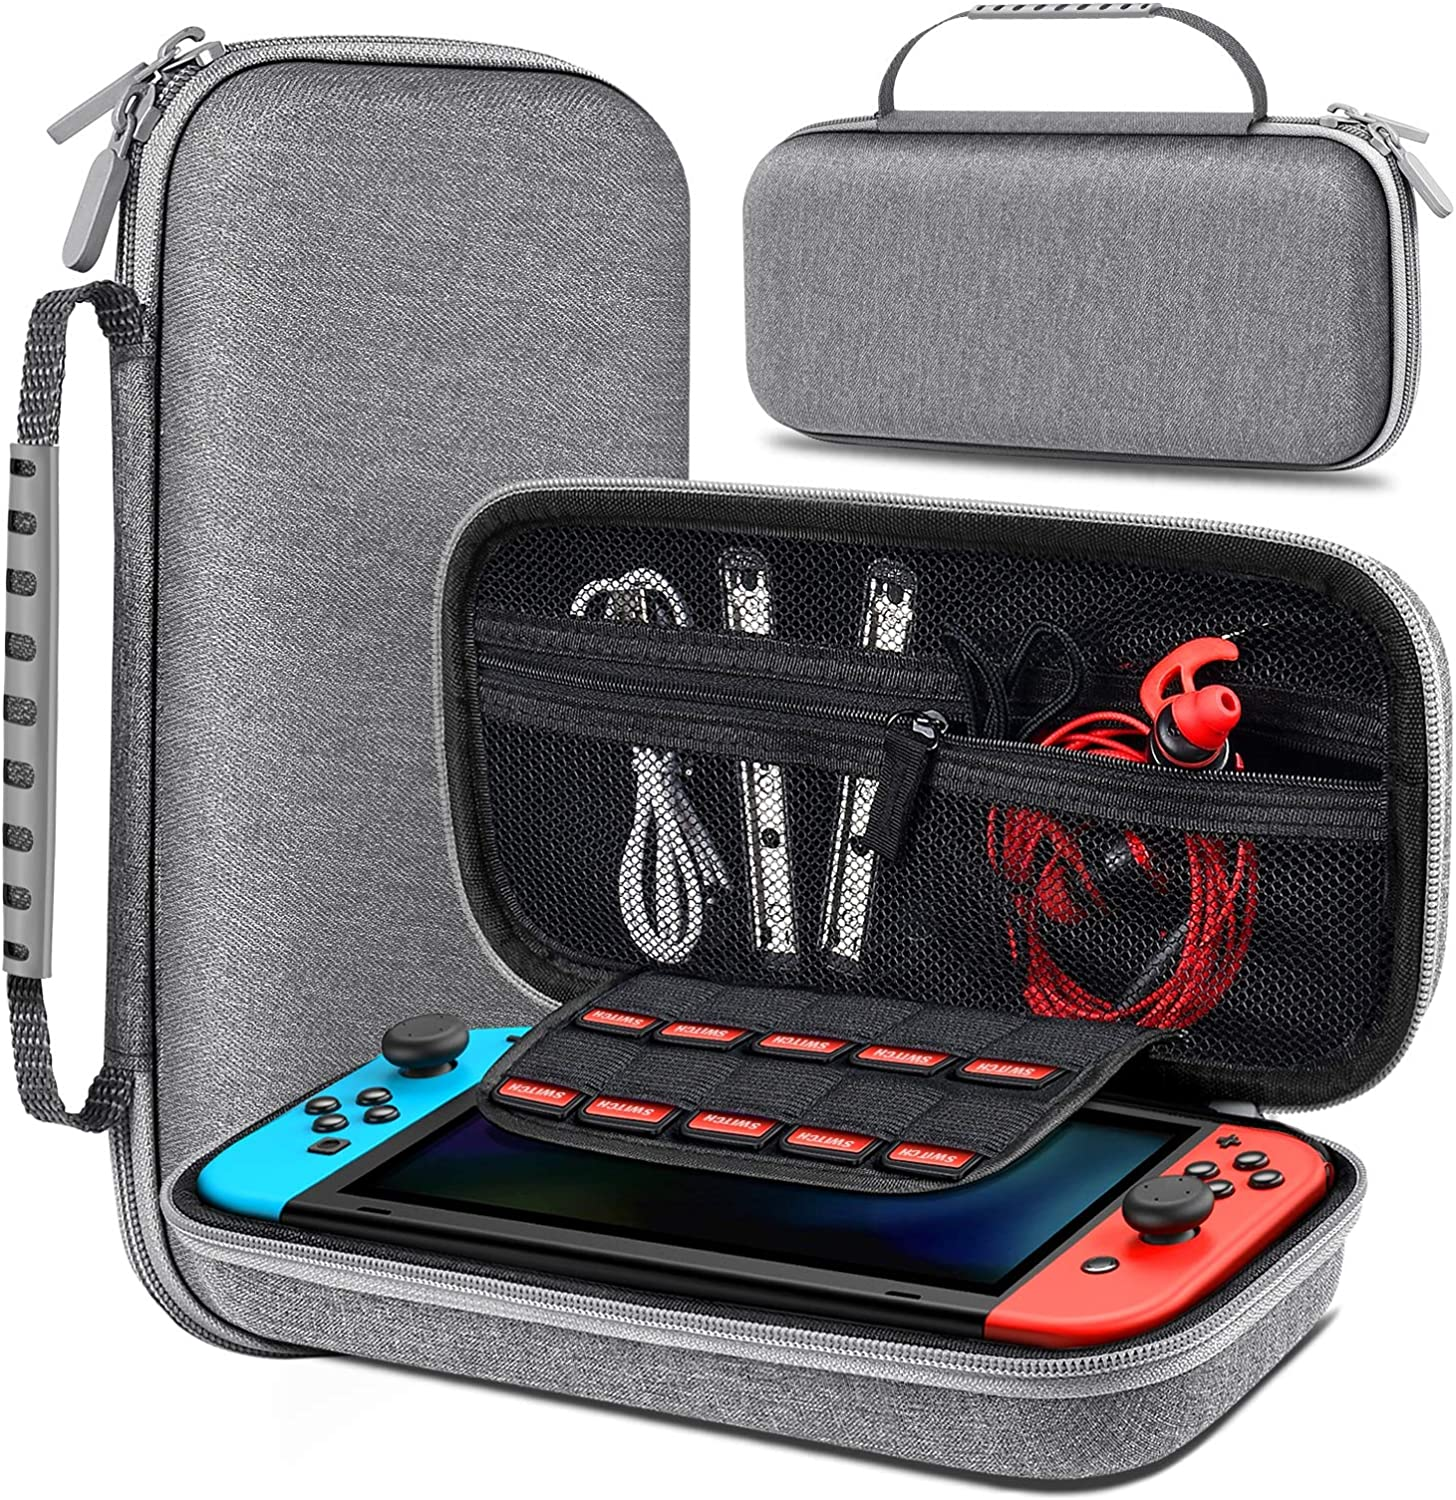 BEBONCOOL Carrying Case for Nintendo Switch, Switch Travel Case Work with Nintendo Switch Dock Case, Portable Switch Carry Case with Handle, Dual Zippers, Switch Bag for Game Storage Accessories-Gray